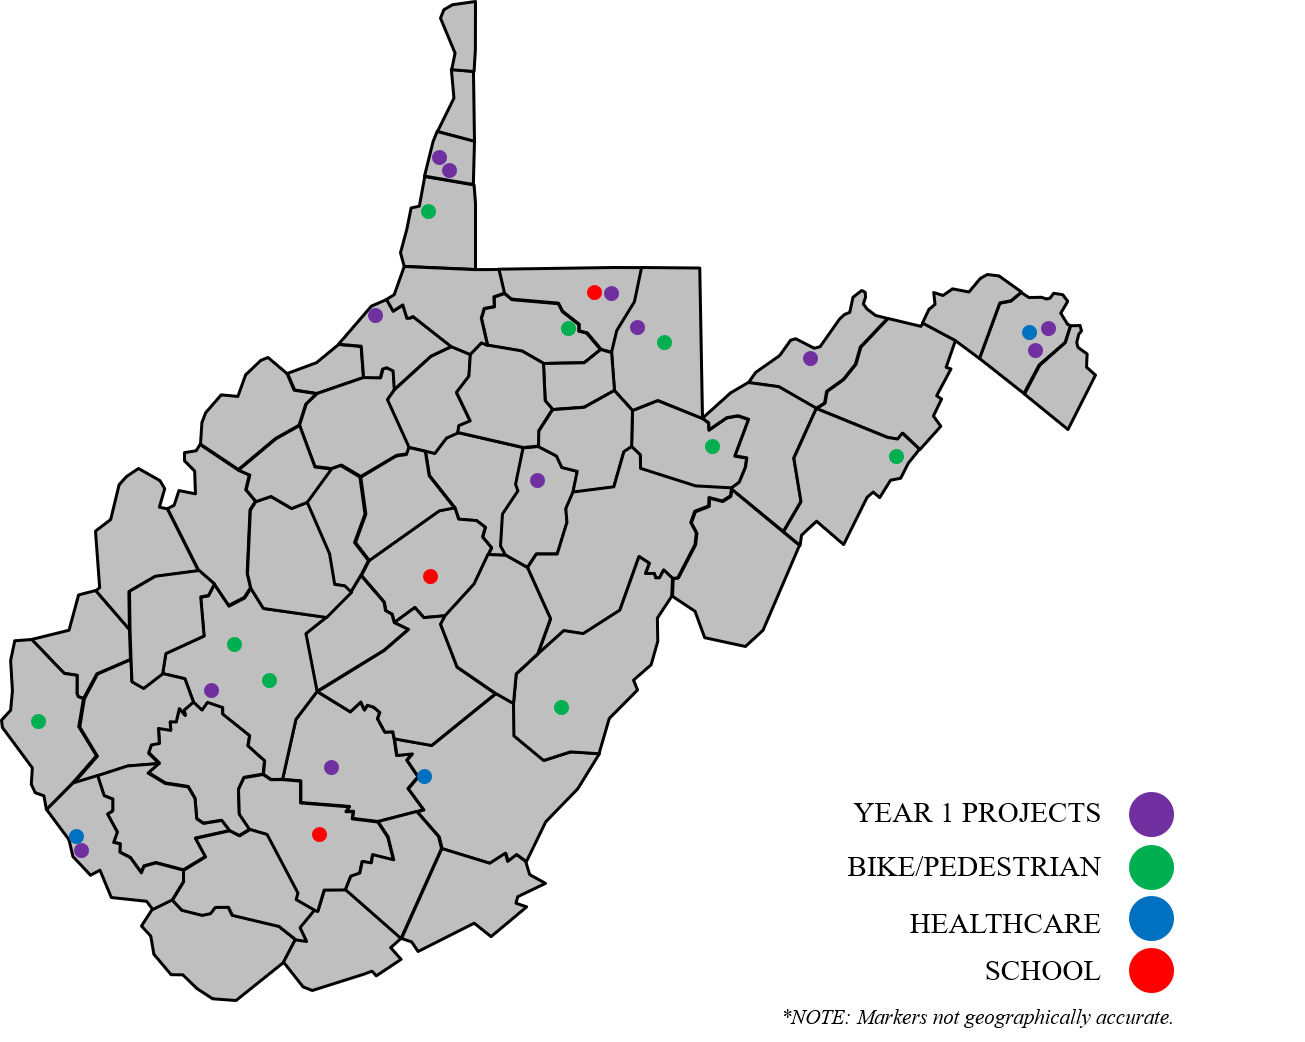 This is a map for the grant program with markers indicating various projects and fields of focus.